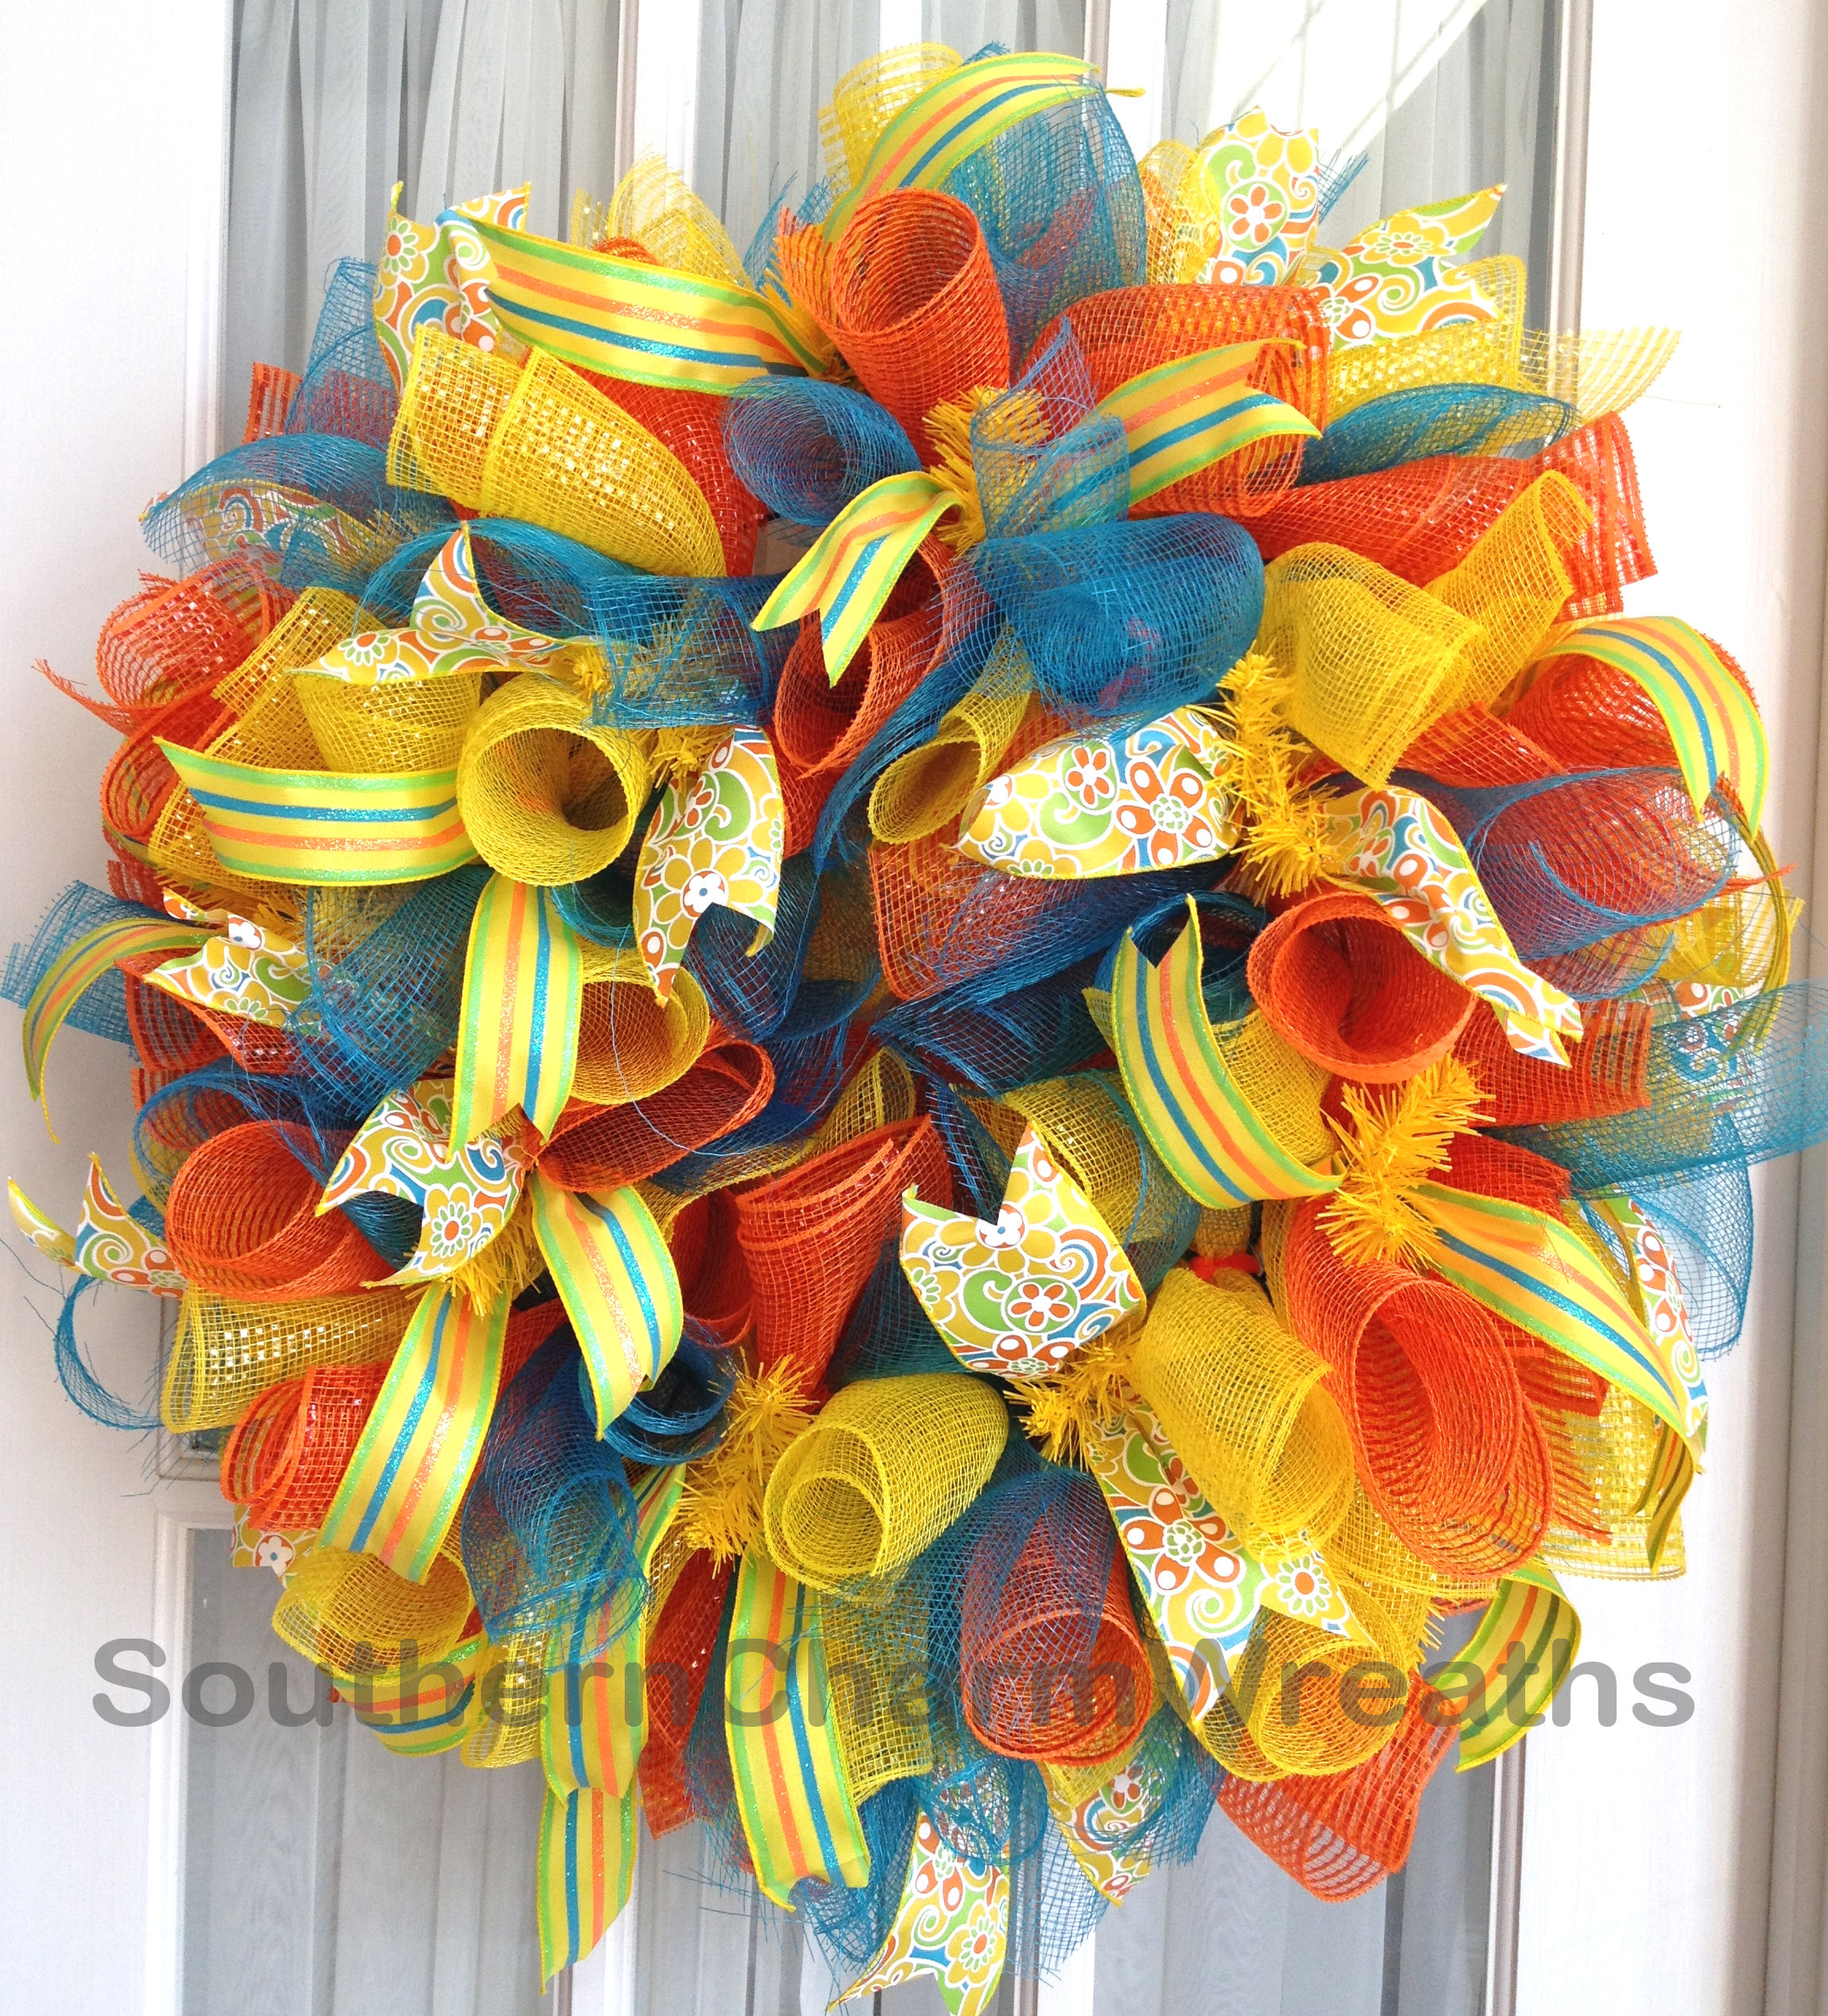 curly--deco-mesh-wreath-orange-yellow-turquoise-2a